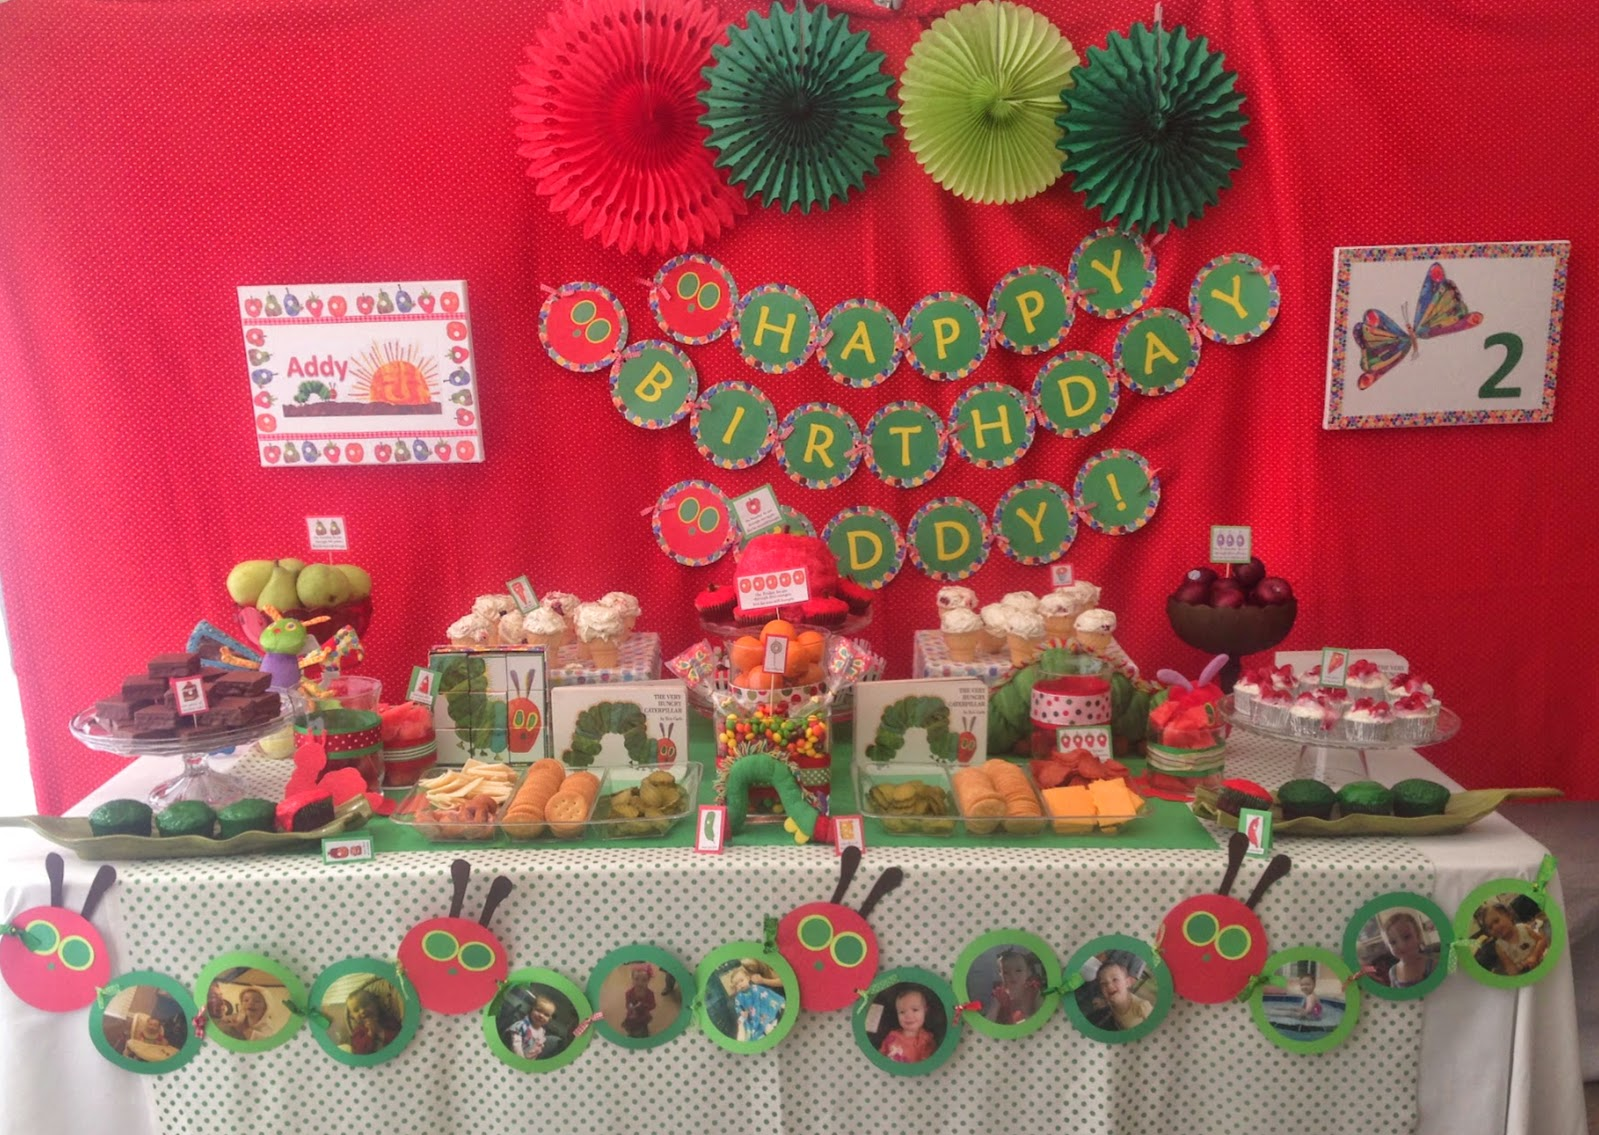 Manic Mama Miles: Our Very Hungry Caterpillar Turns 2!